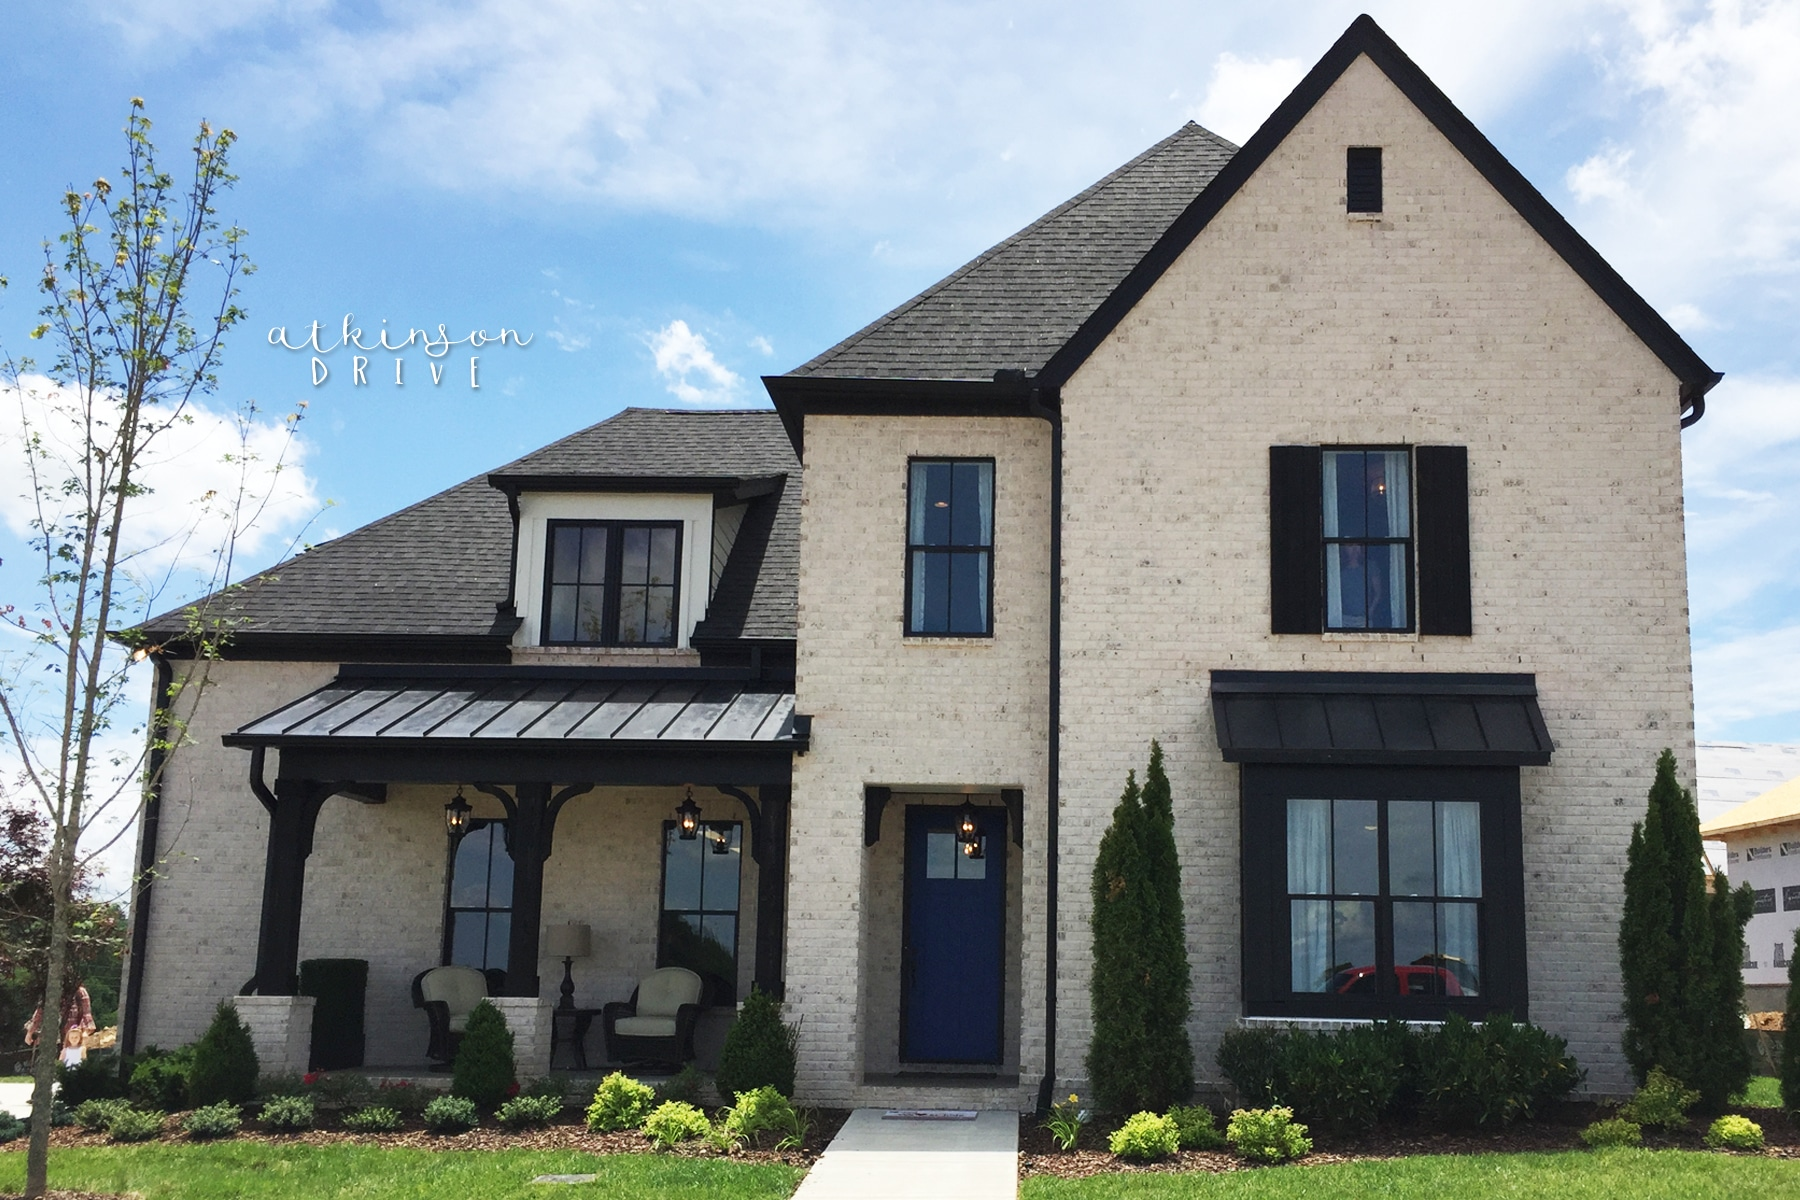 The Nashville St. Jude Dream Home is beautifully built by Signature Homes in Franklin, TN